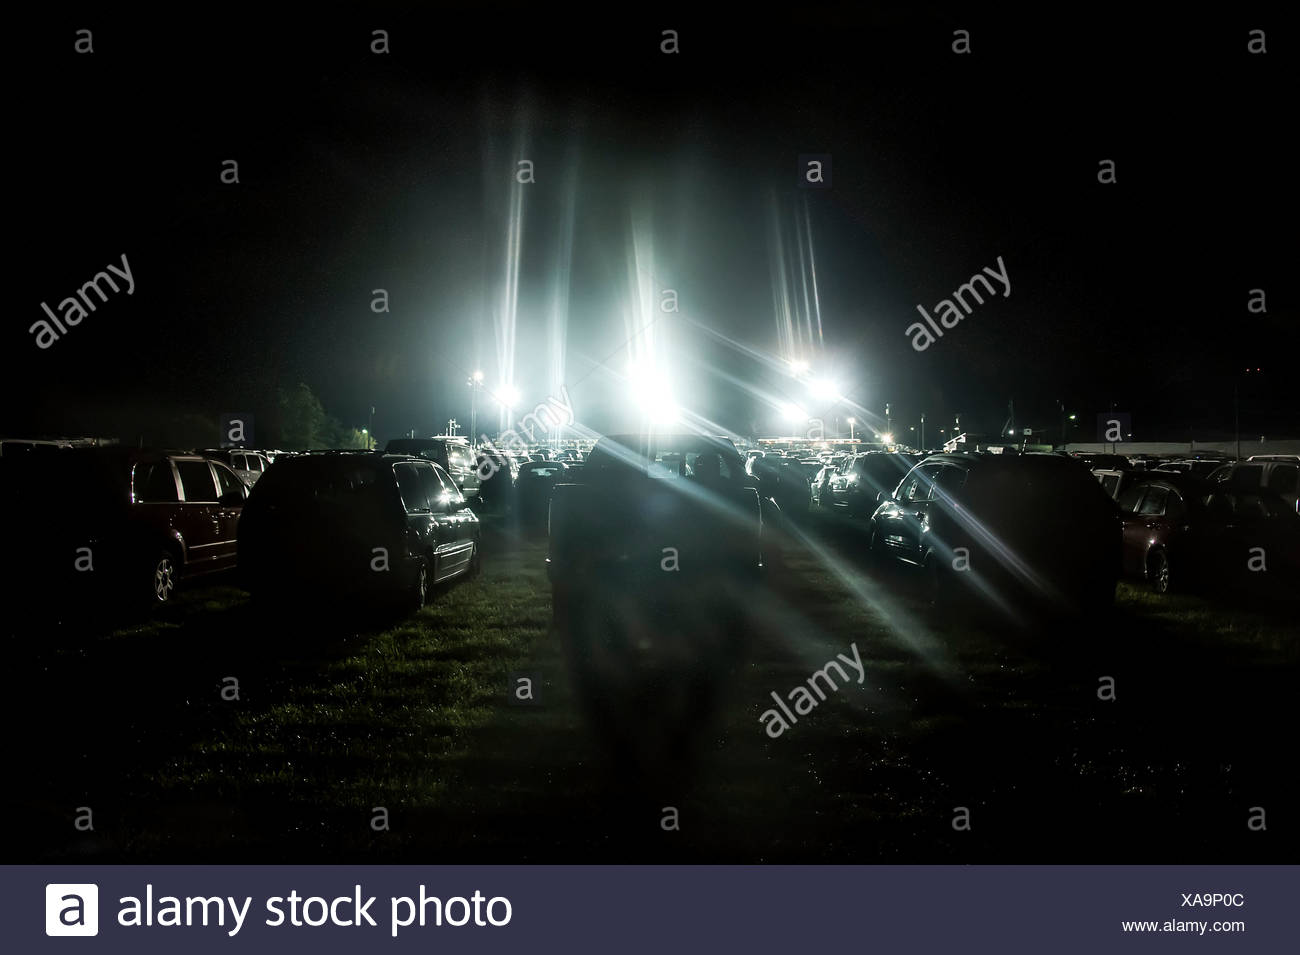 Cars parked in a grass field for evening rodeo event, Cowtown, New Jersey, USA - Stock Image